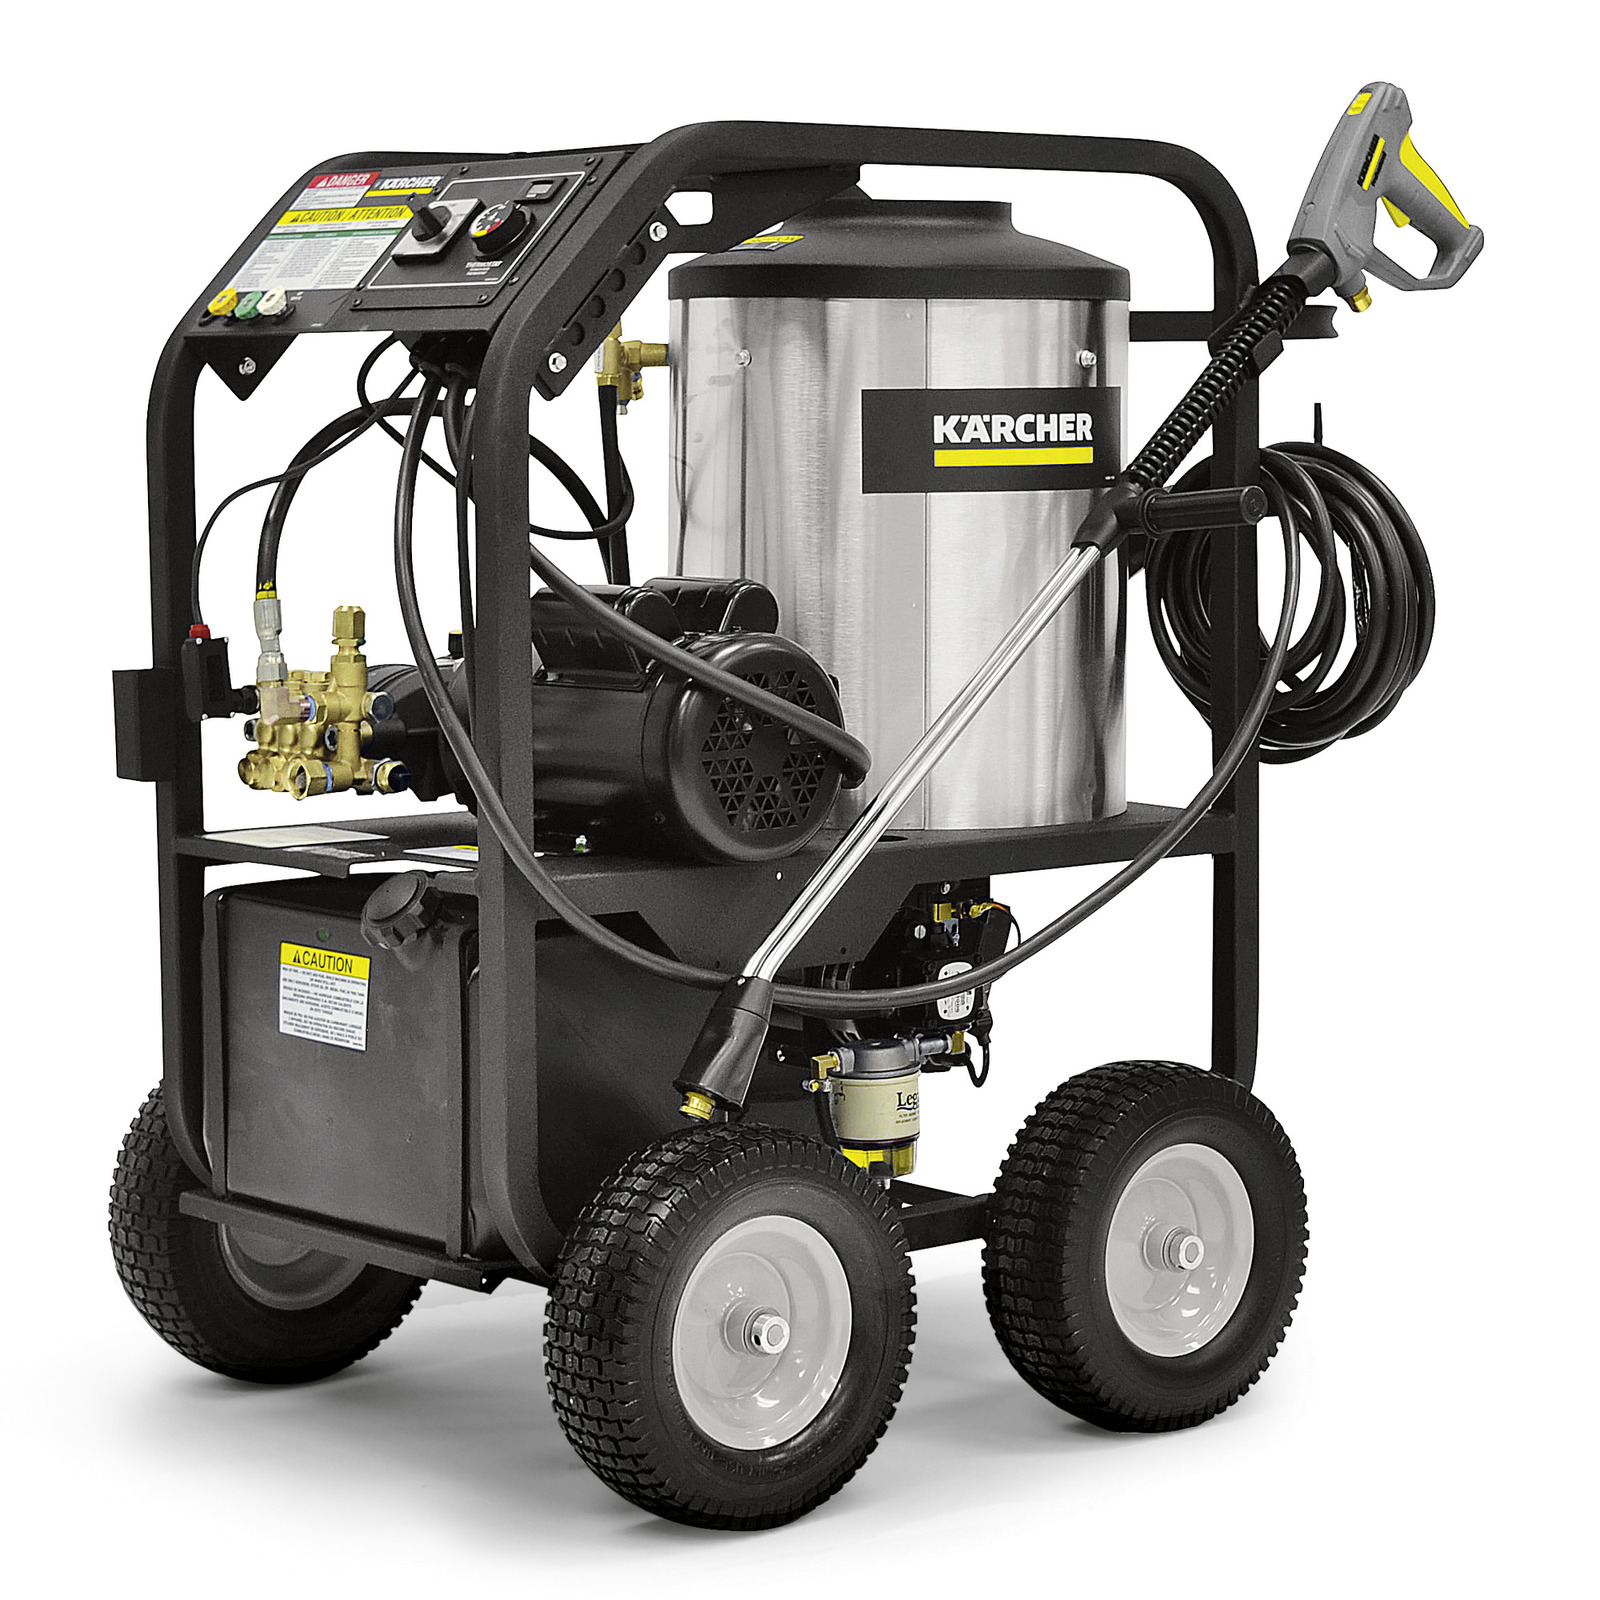 Hds Cage Electric Hot Water Commercial Power Washer Karcher